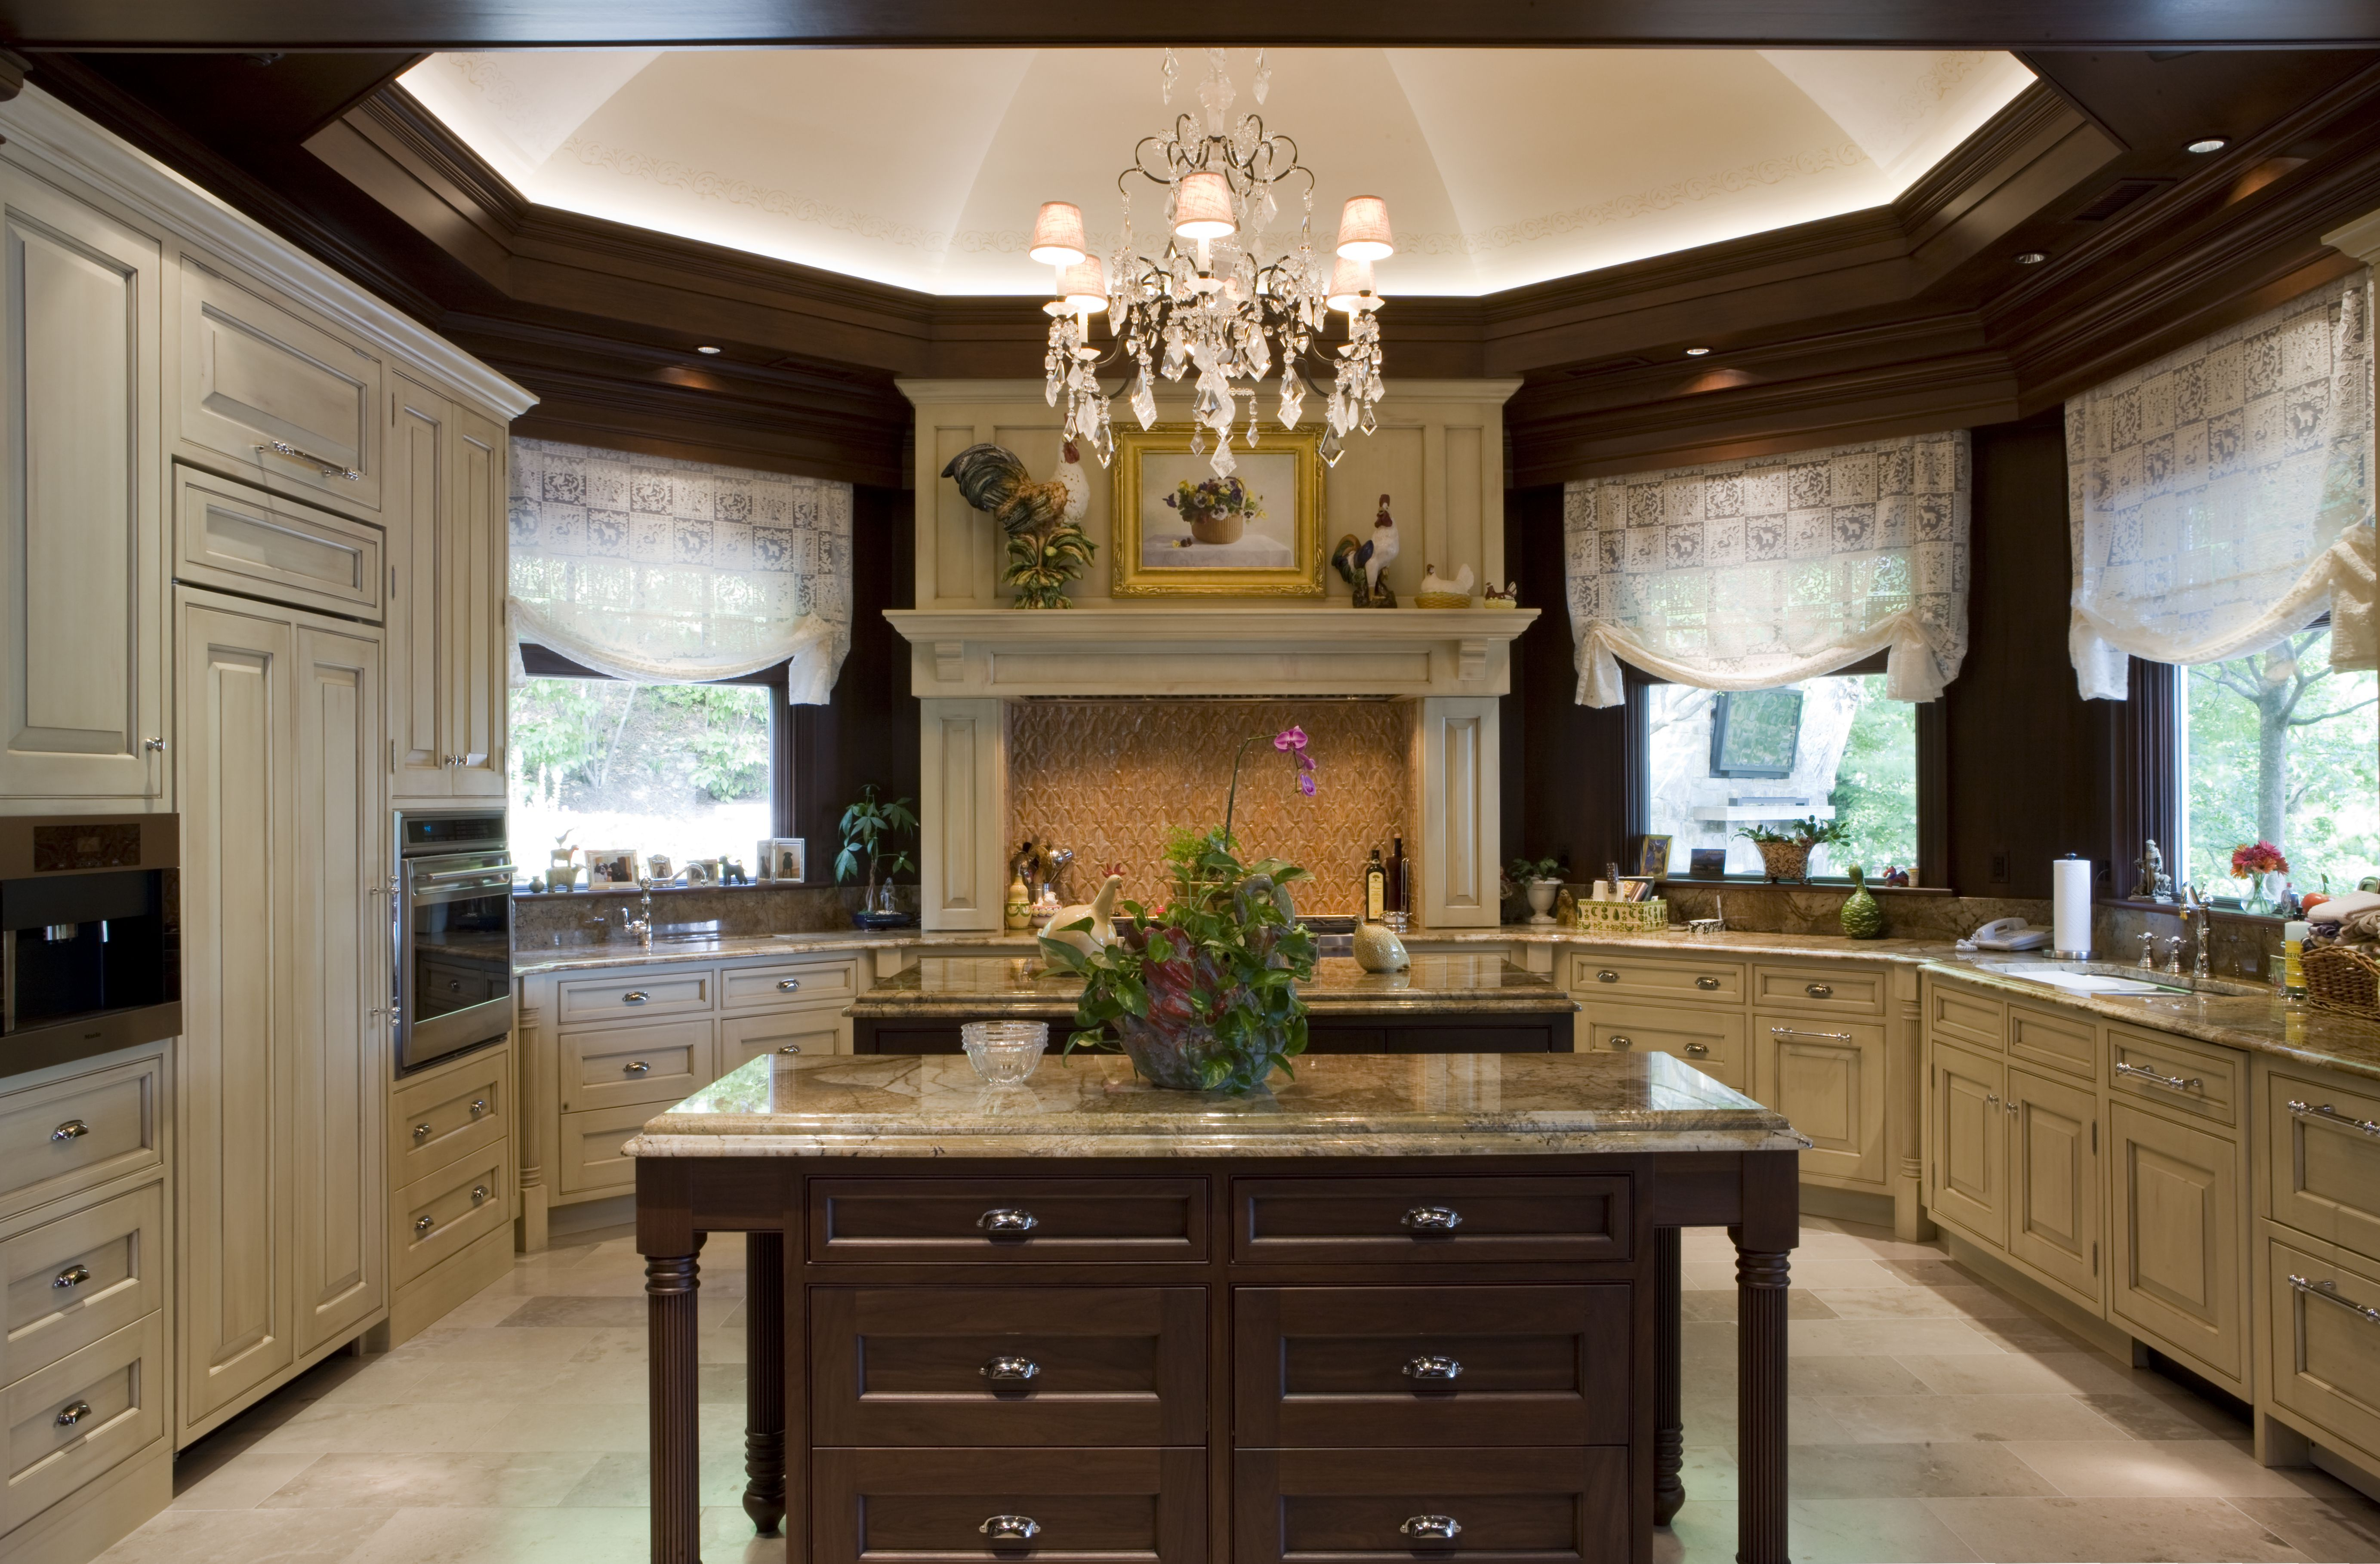 traditional kitchen beautiful large kitchen with two islands and drawers that open both ways on kitchen interior luxury id=33048